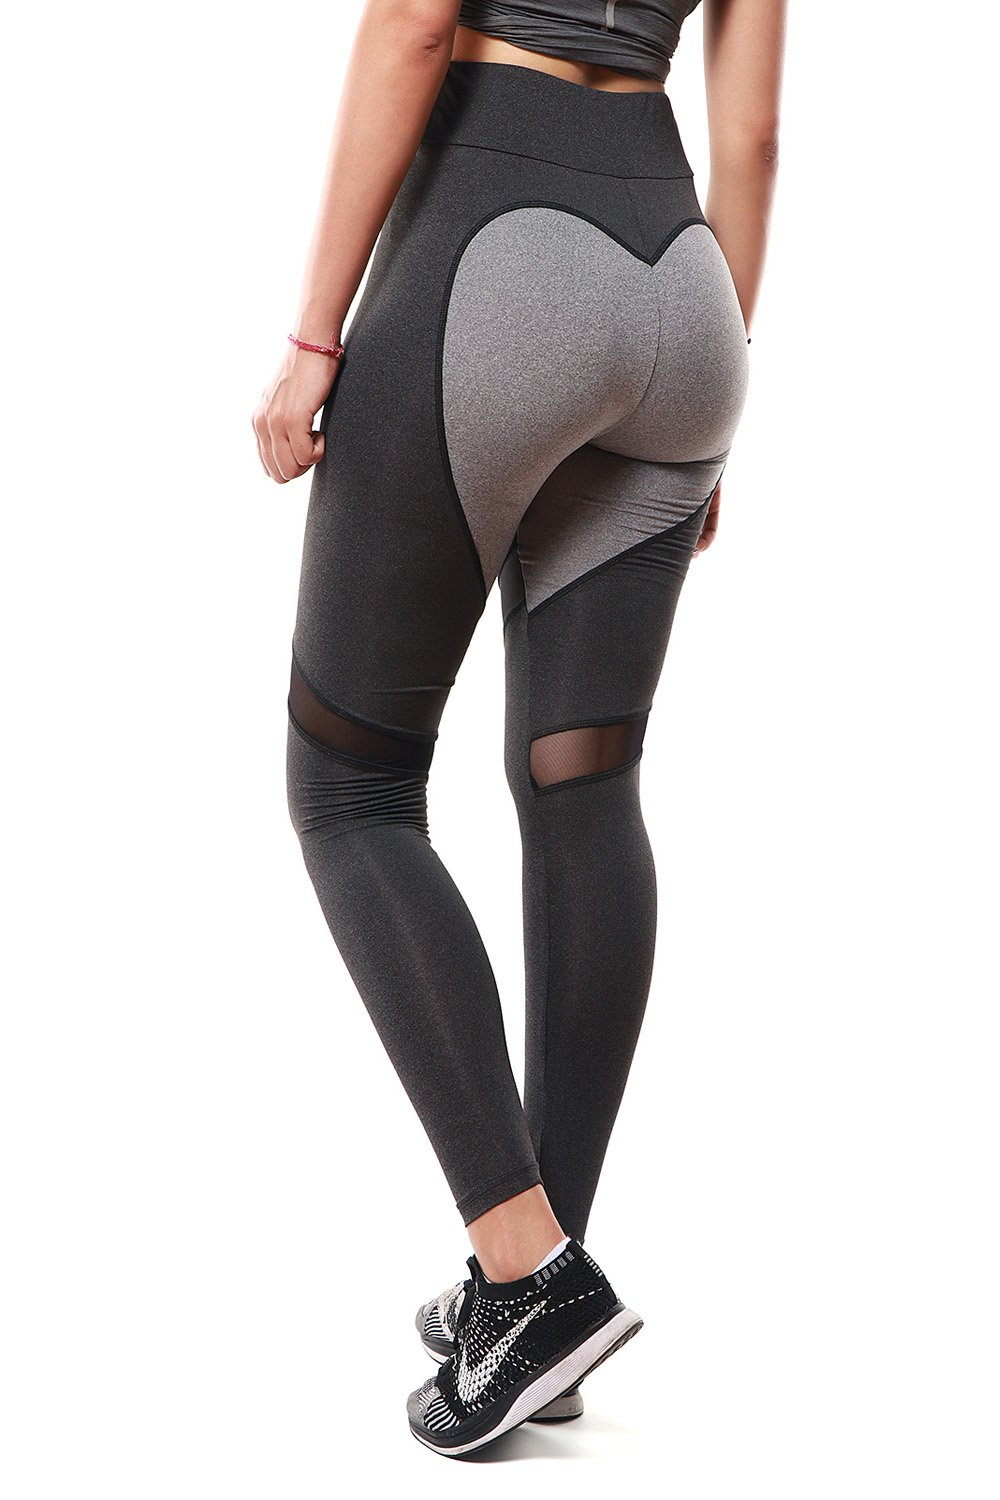 APTERA Women's High Waist Leggings Color Contrast Tights Full Length With Mesh Panels For Yoga Jogging Workout - Dark Gray, M